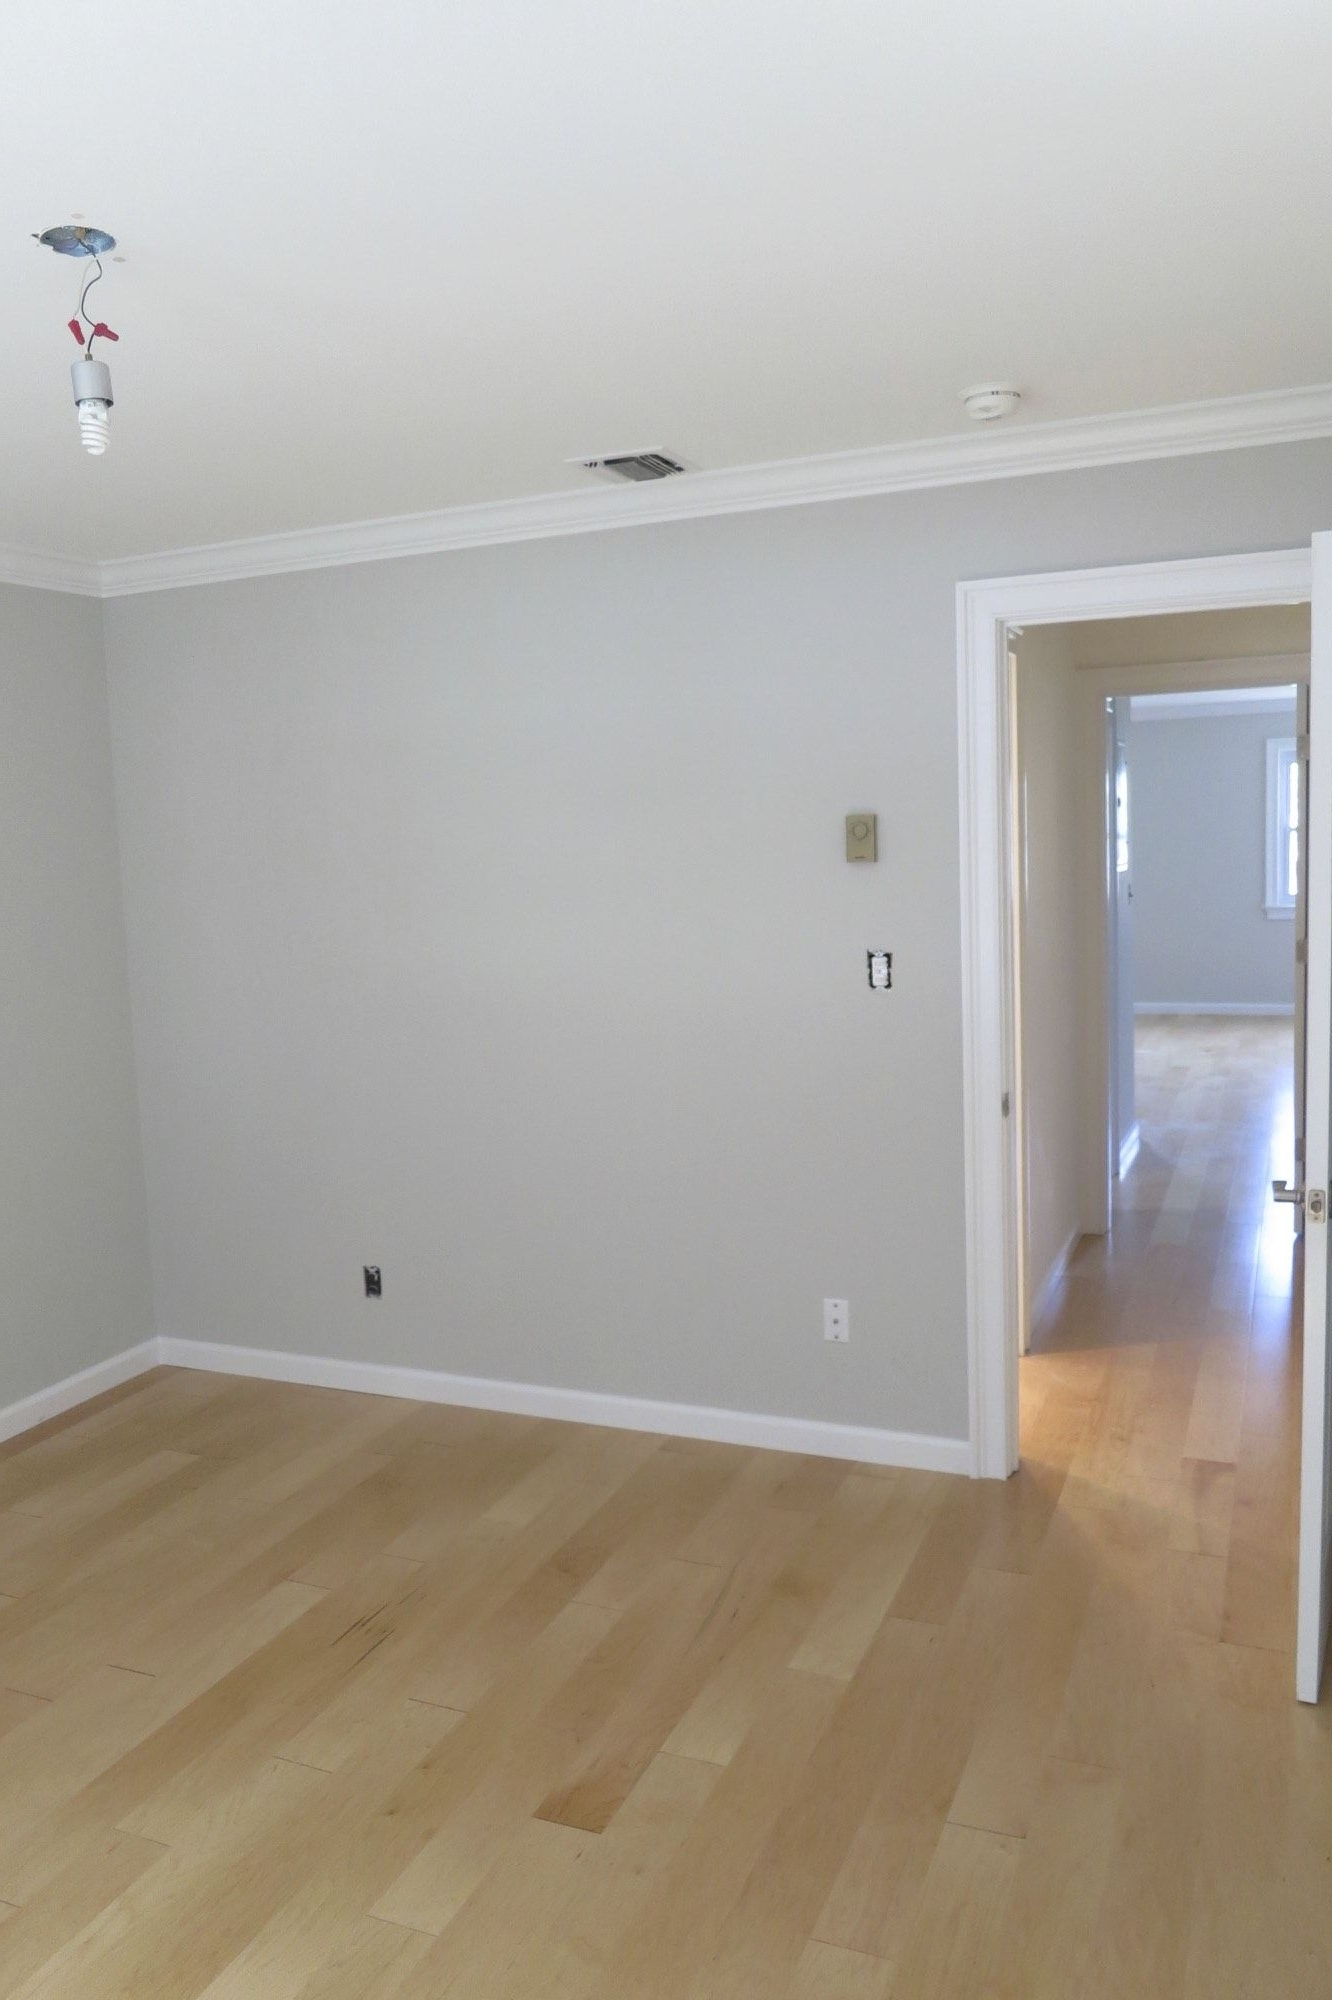 Guest Room Benjamin Moore Abalone On Walls   Living Room Abalone Paint Color Living Room